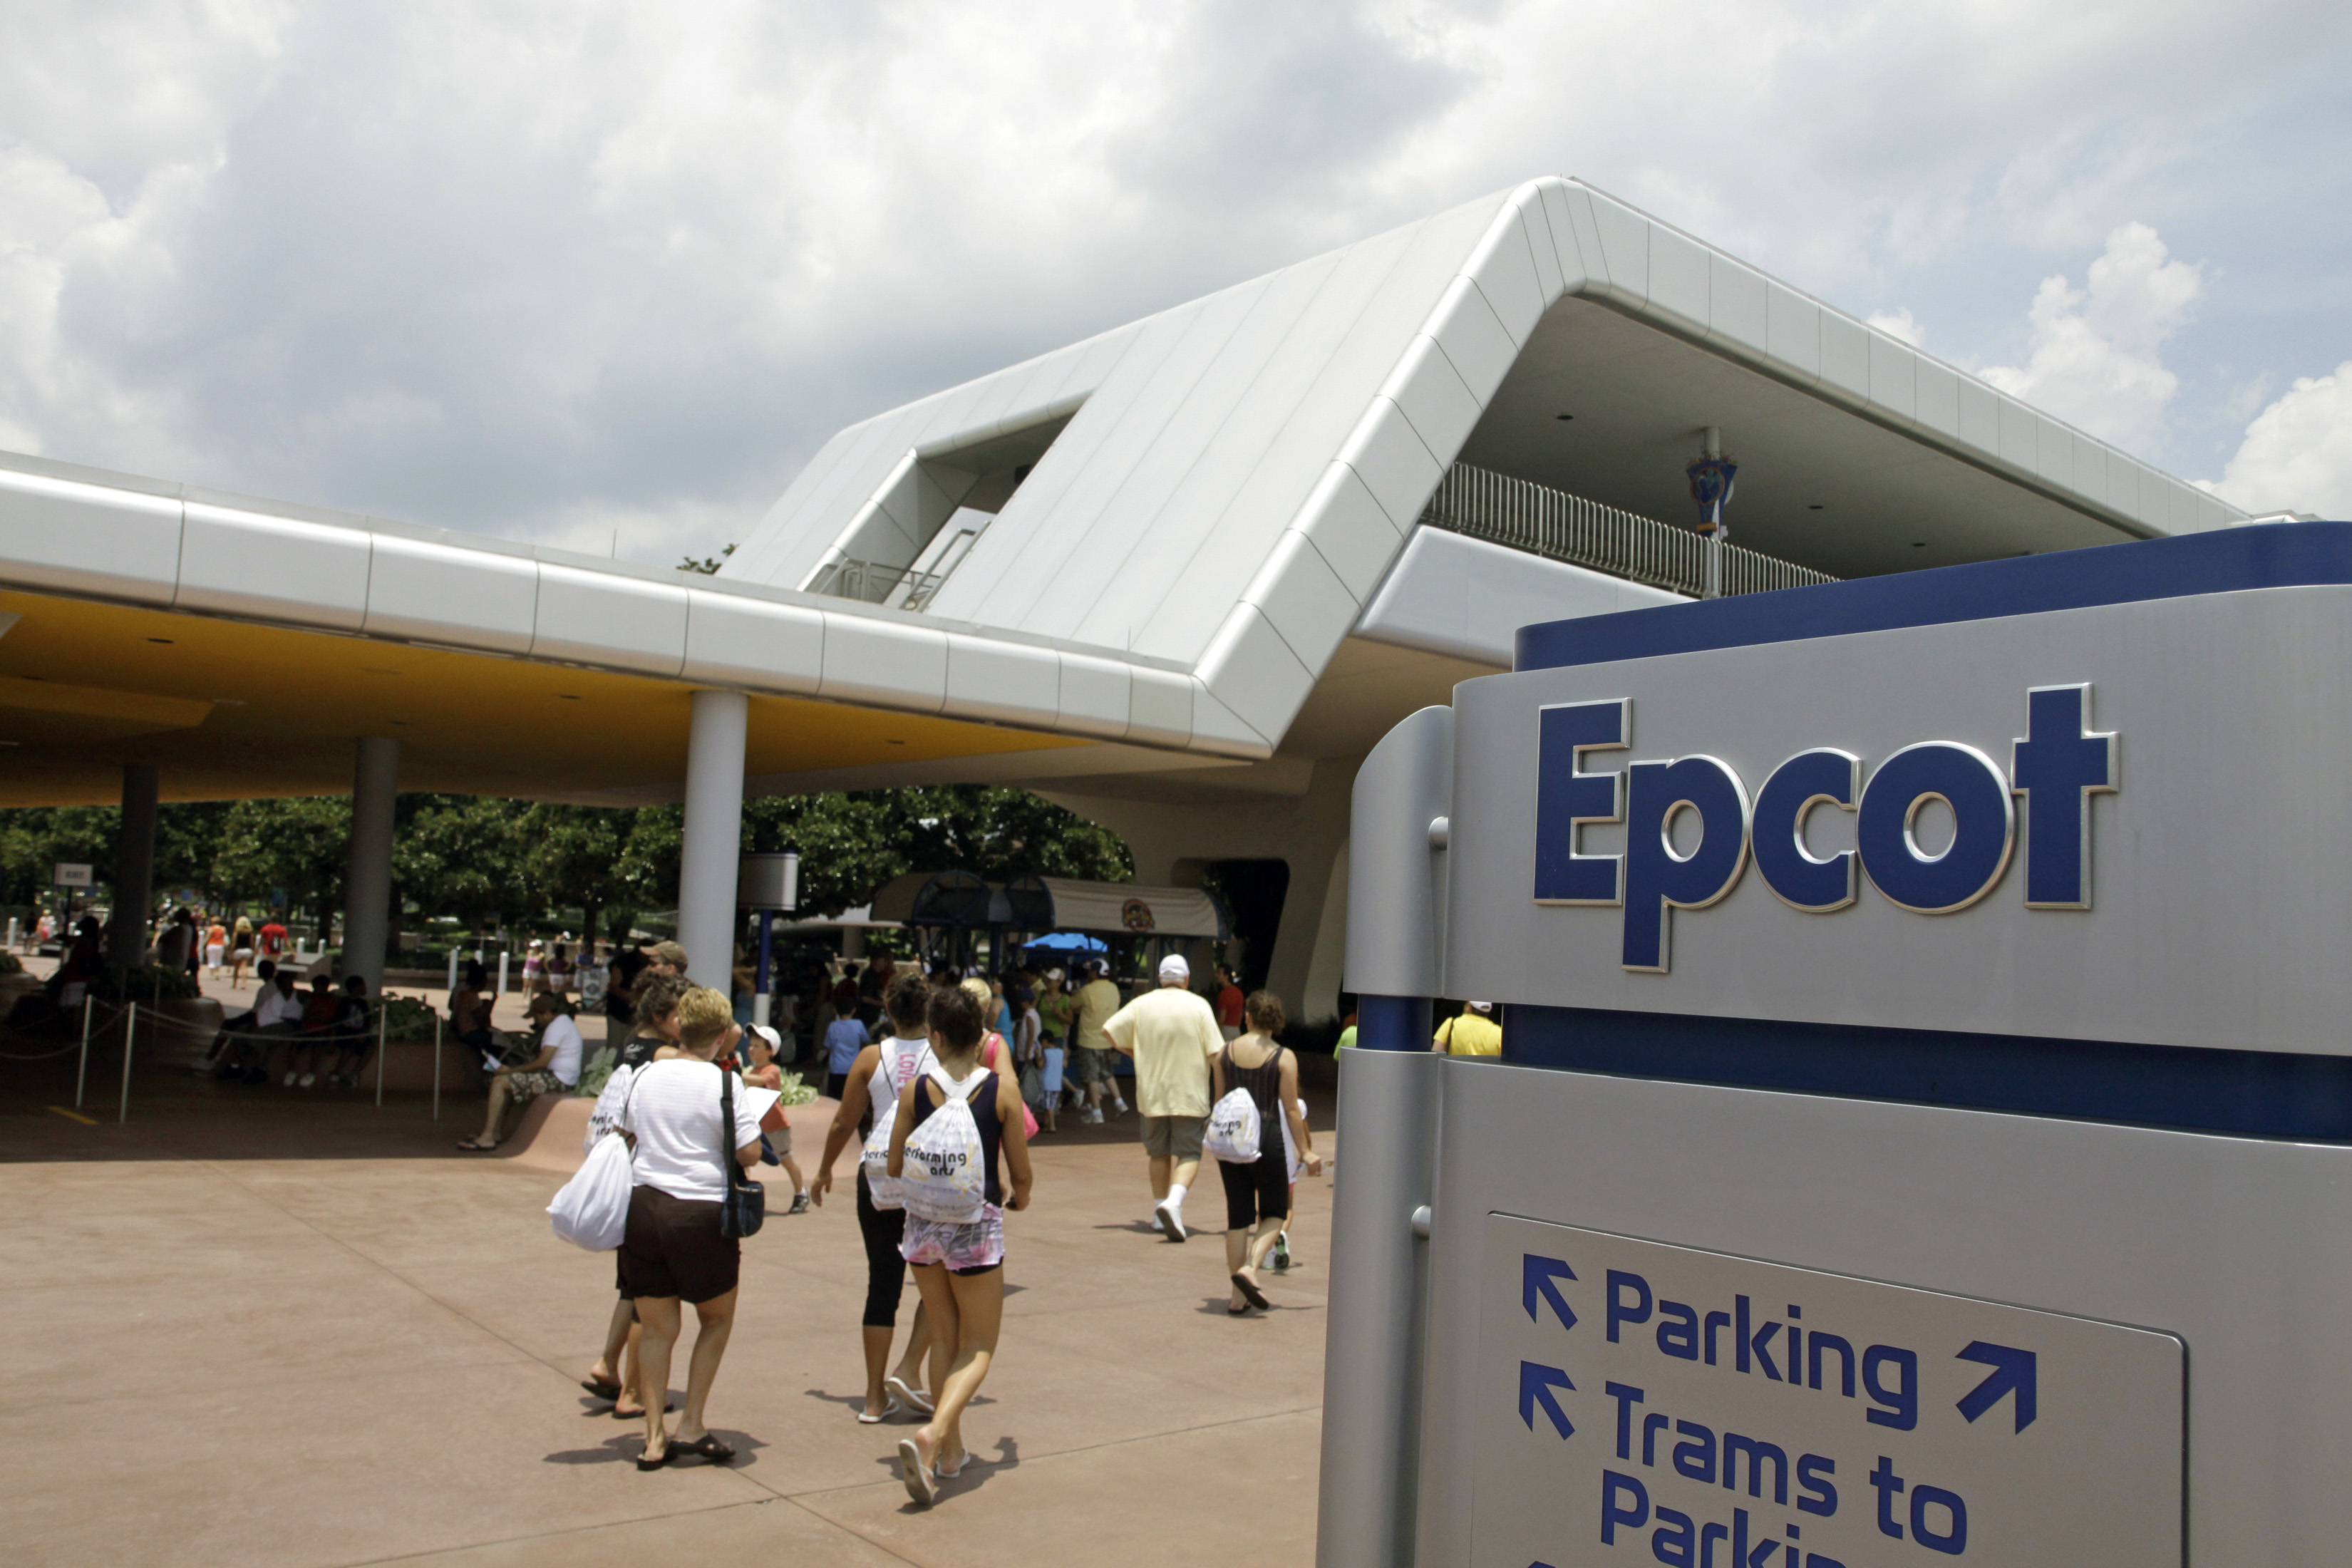 <div class='meta'><div class='origin-logo' data-origin='none'></div><span class='caption-text' data-credit='AP Photo/John Raoux'>Vistors exit the EPCOT theme park past the monorail station at Walt Disney World in Lake Buena Vista, Fla., in July 2009.</span></div>